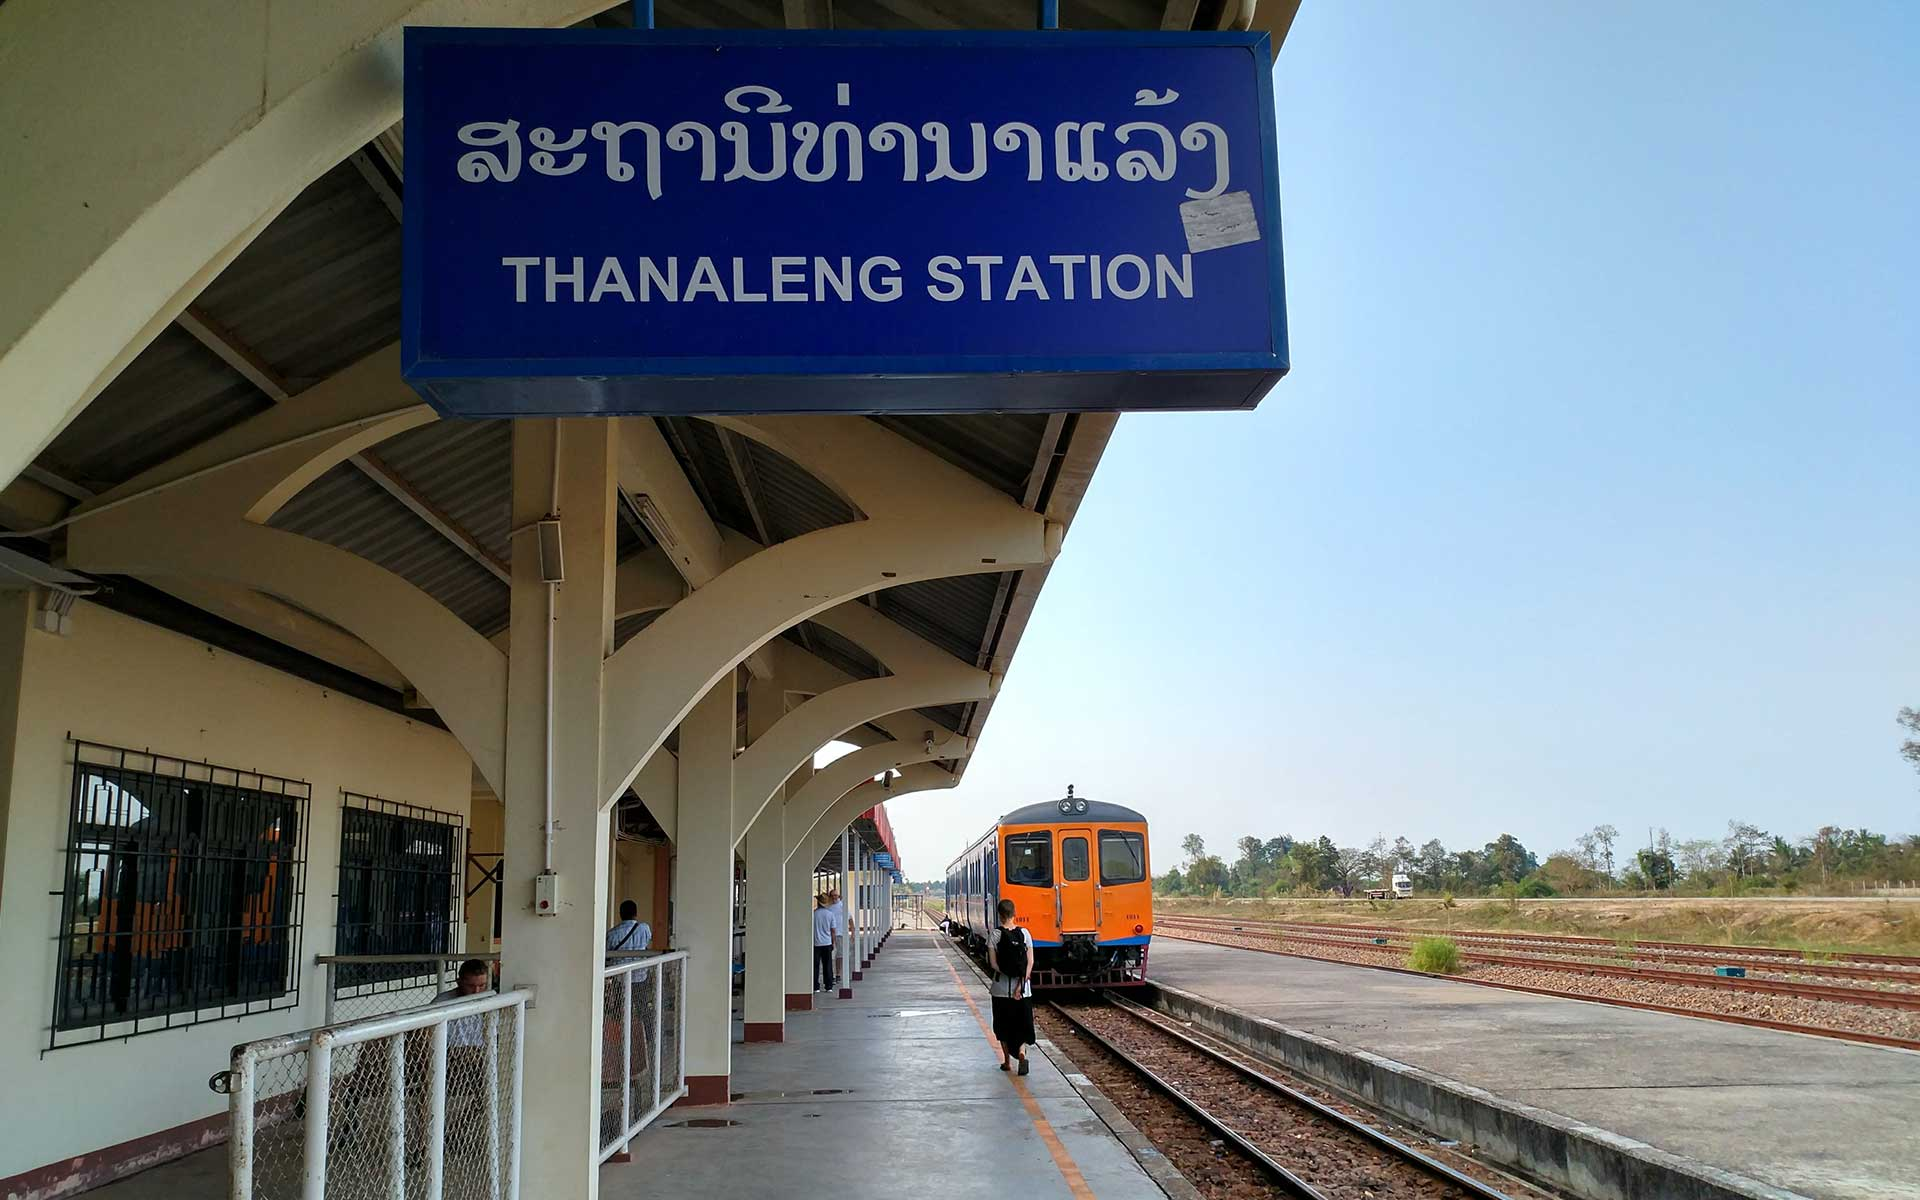 Thanaleng Station